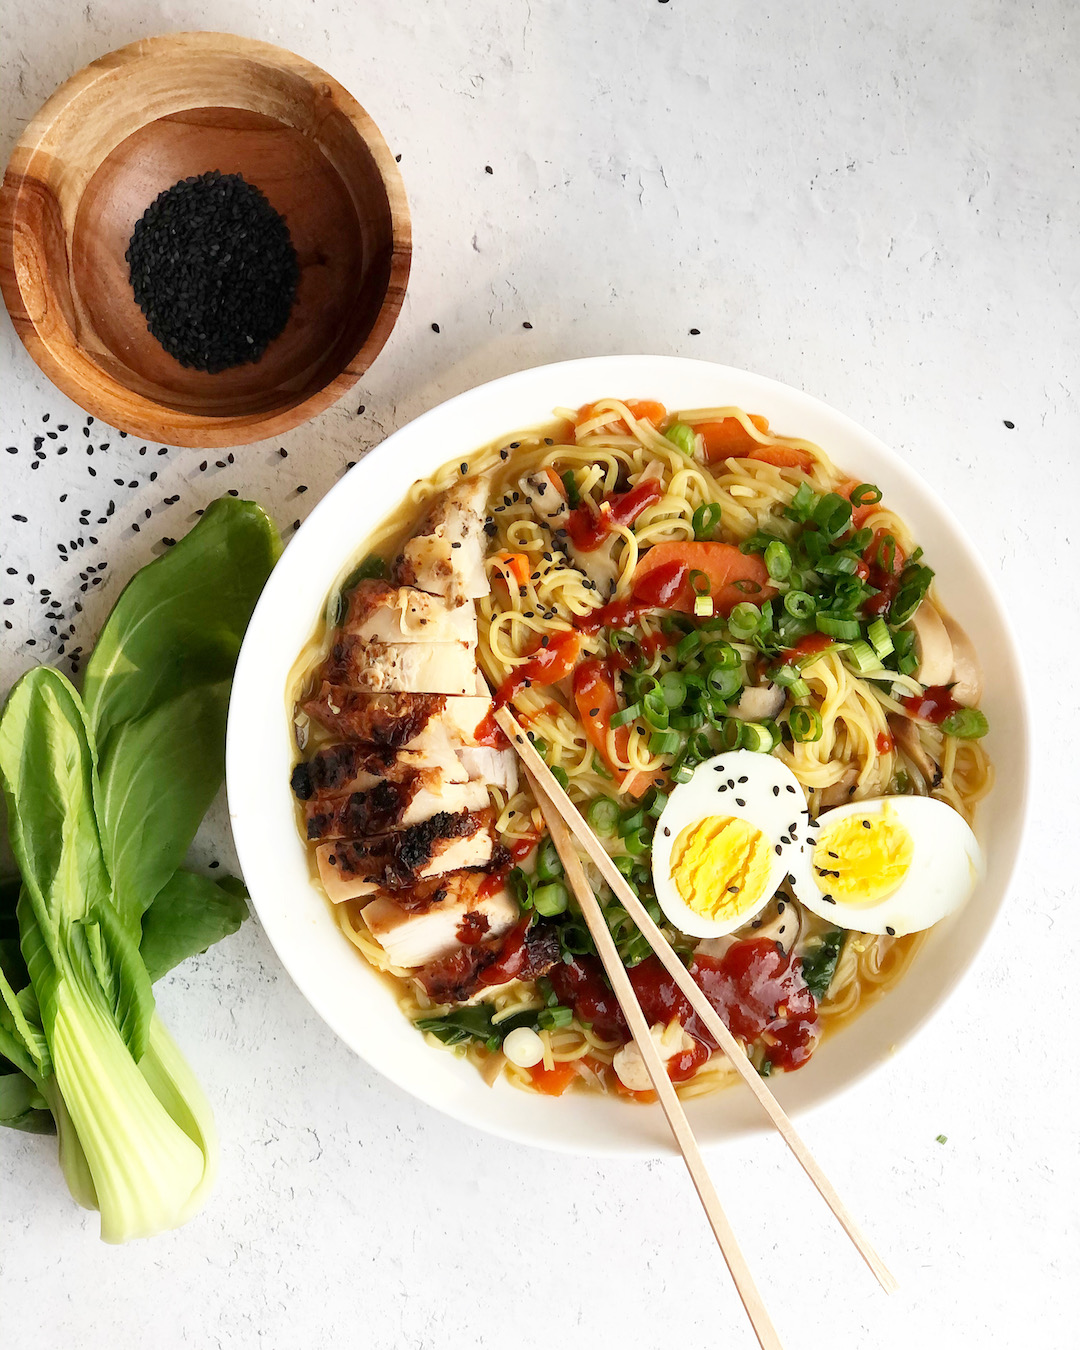 ramen in a bowl with chop sticks and bock choy and sesame seeds